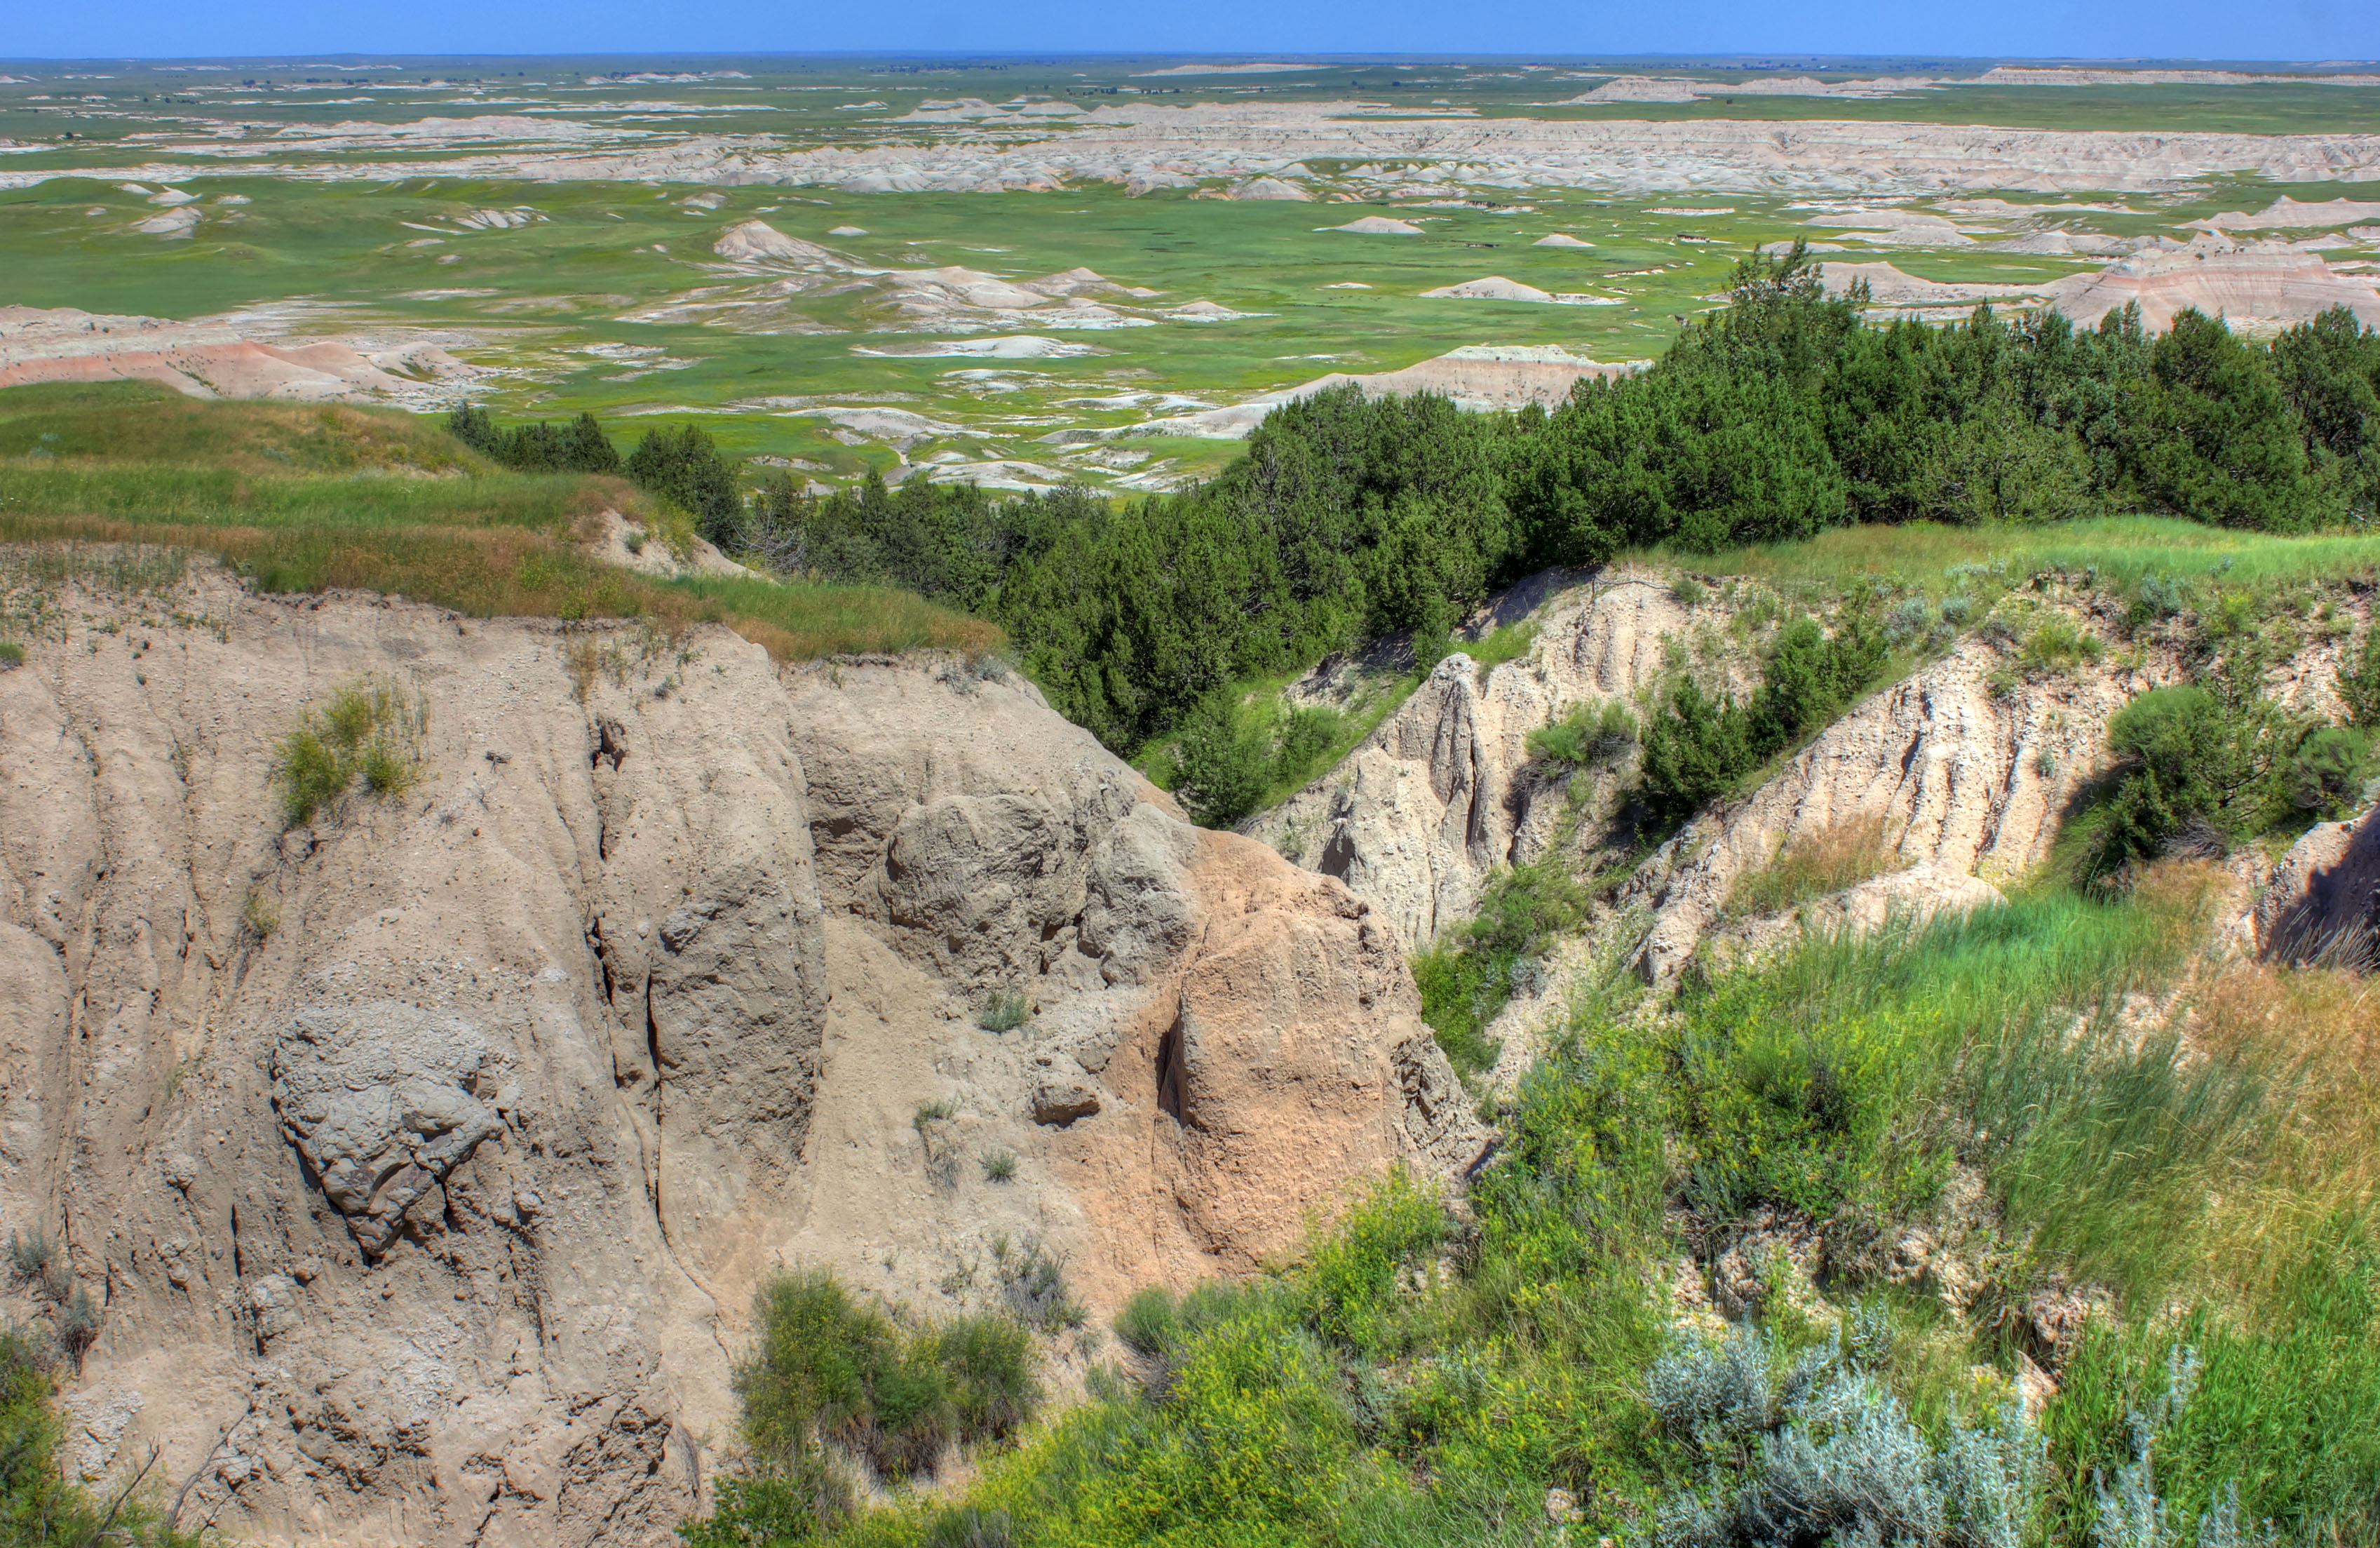 Hilltops with trees at Badlands National Park, South Dakota.